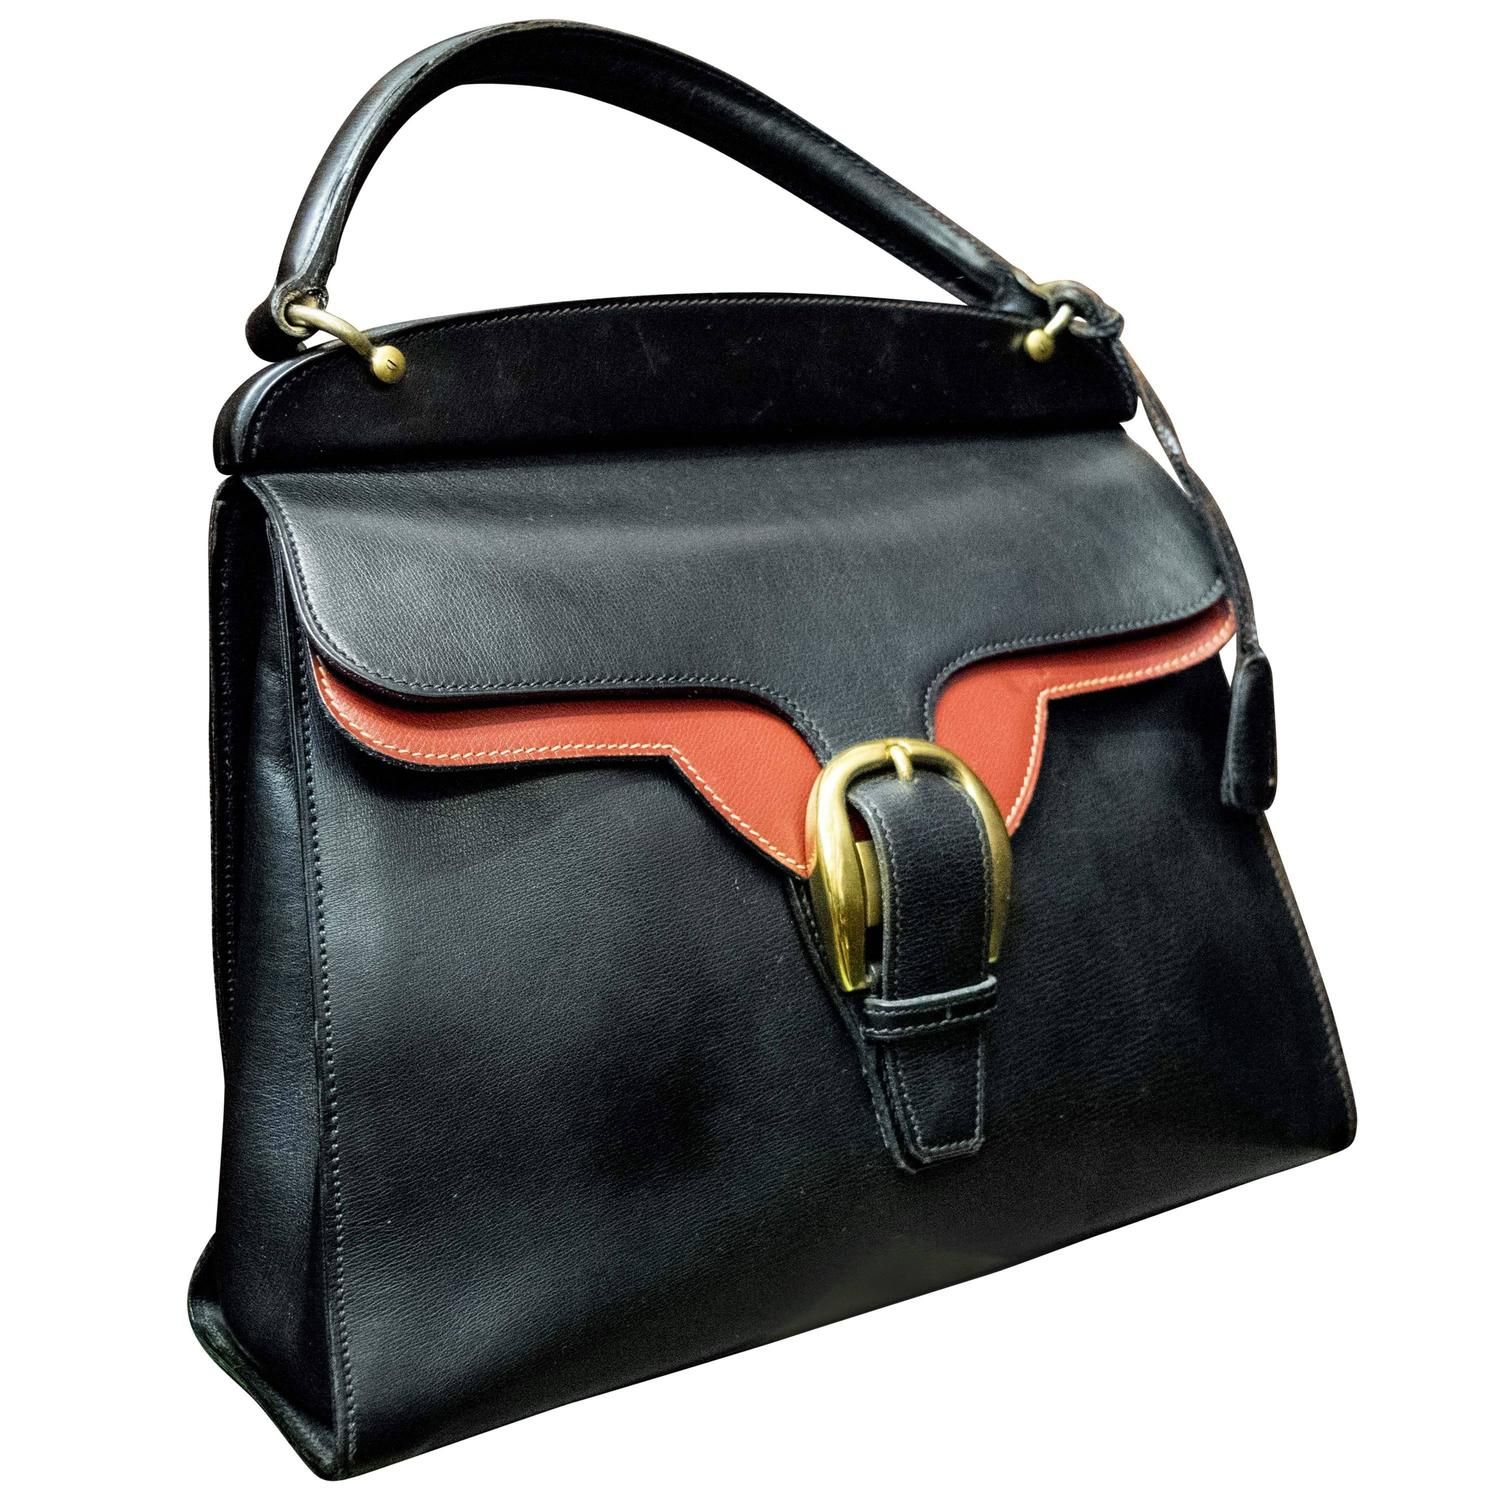 1950s Gucci Black and Red Leather Handbag  | From a collection of rare vintage top handle bags at https://www.1stdibs.com/fashion/handbags-purses-bags/top-handle-bags/